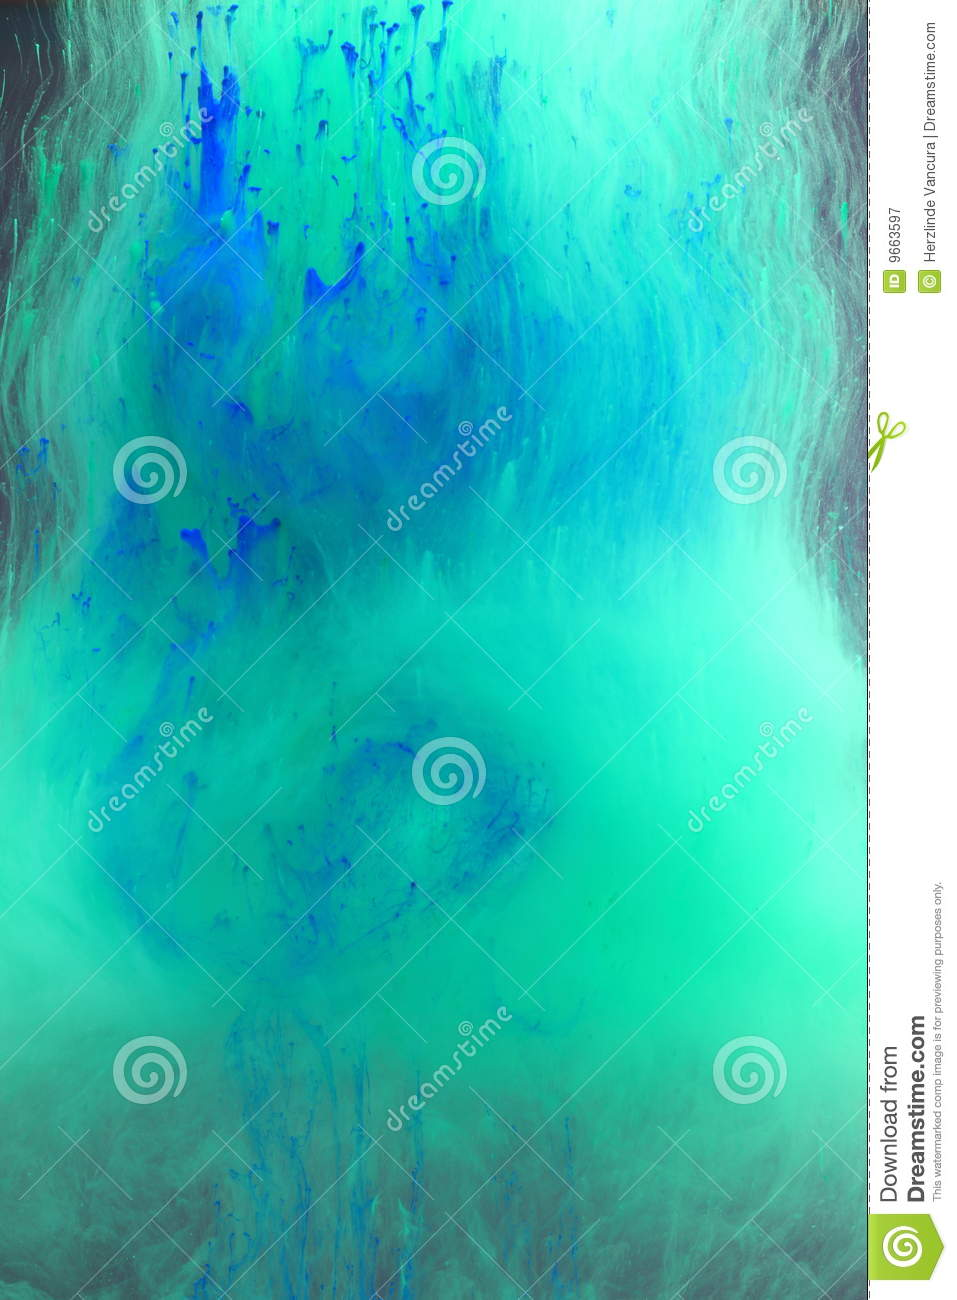 Blue green watery background